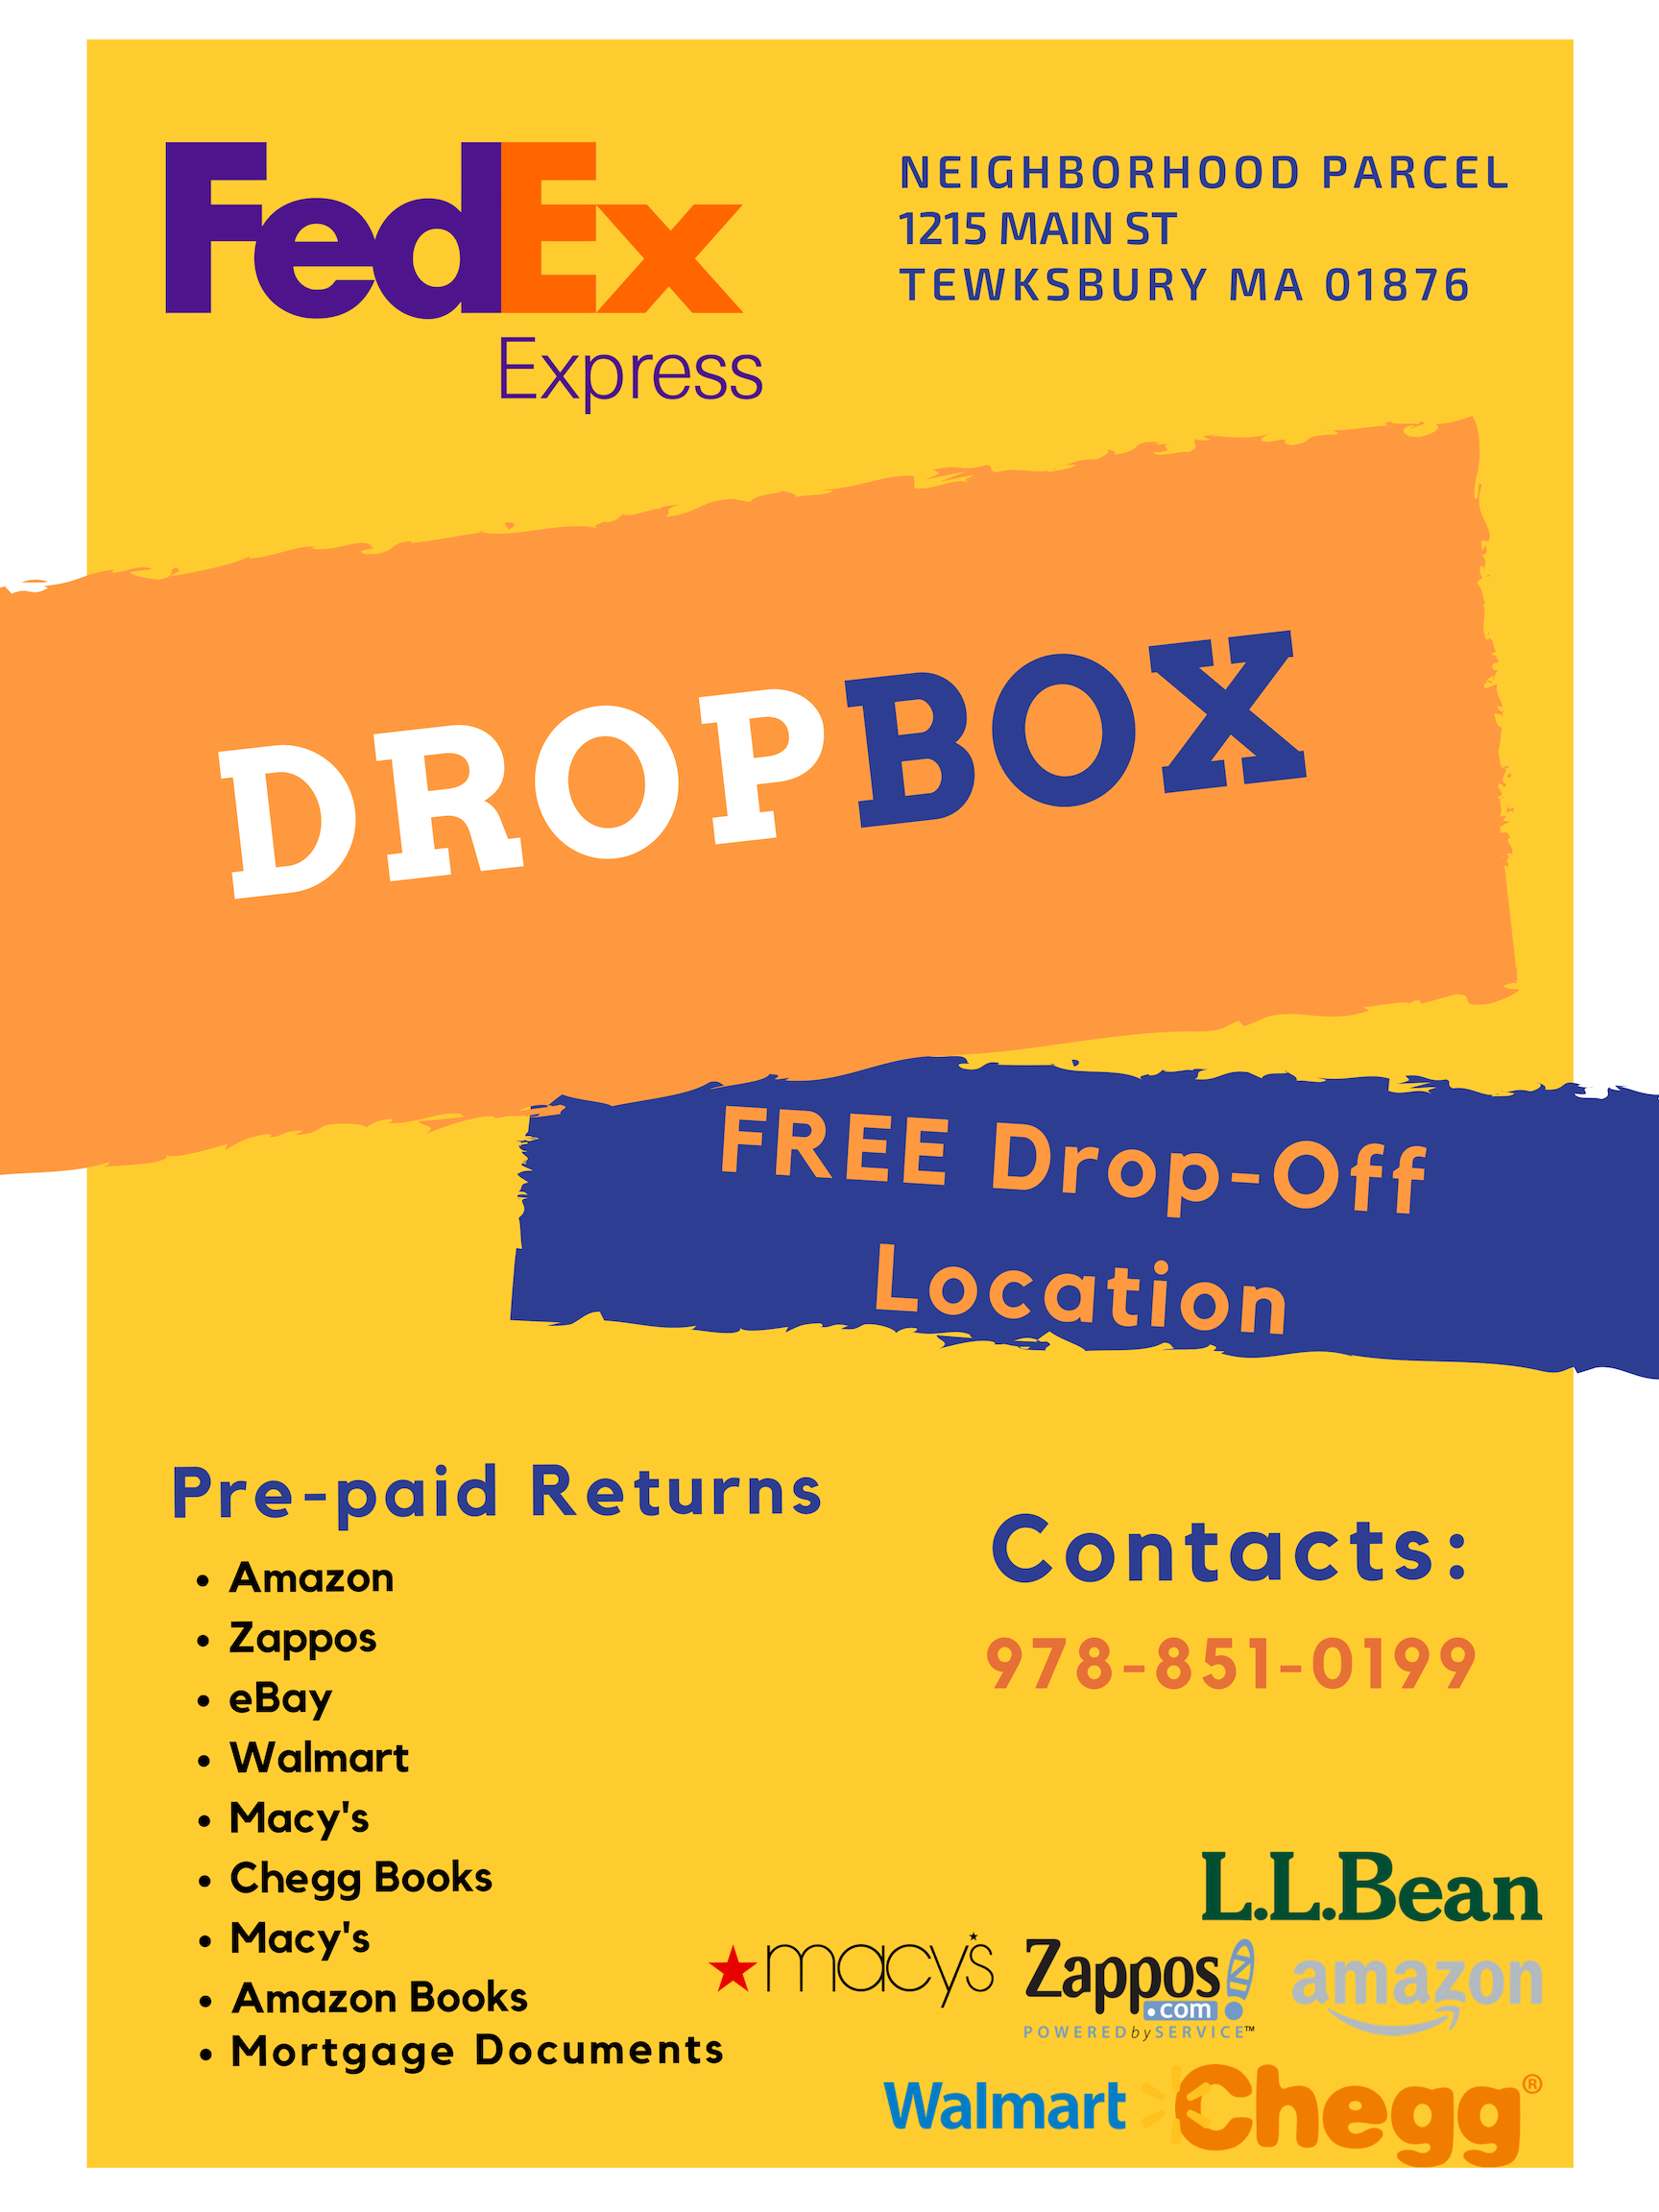 Free FedEx Dropbox location, conveniently located at 1215